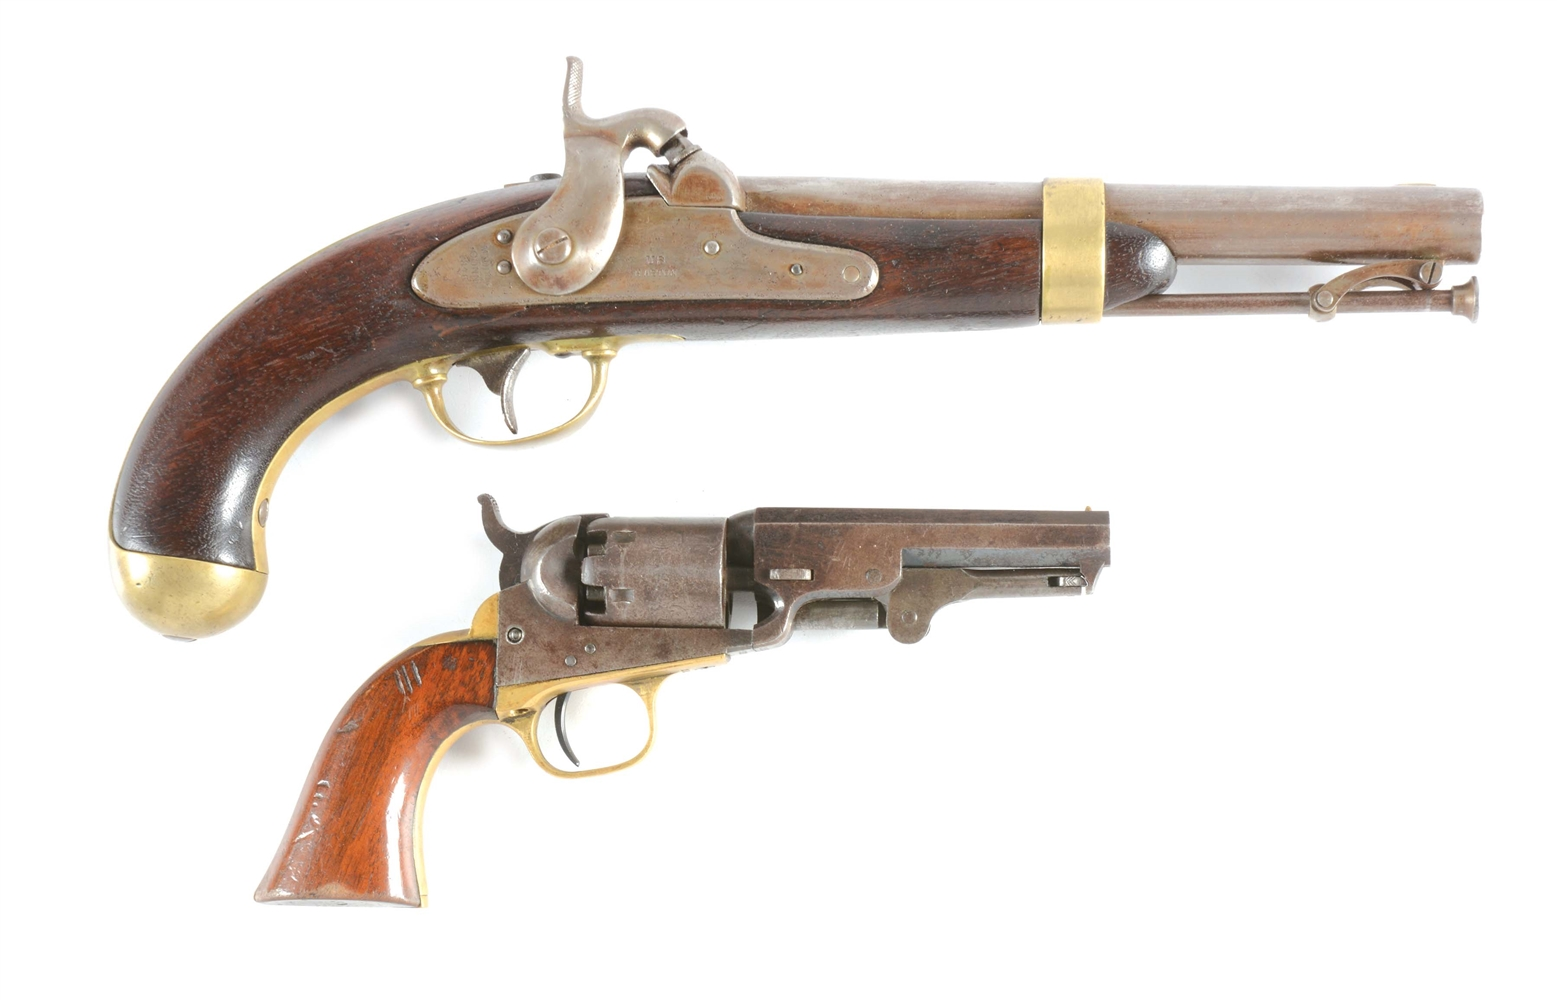 (A) LOT OF 2: US PERCUSSION PISTOLS - ASTON MODEL 1842 AND COLT MODEL 1849 POCKET.